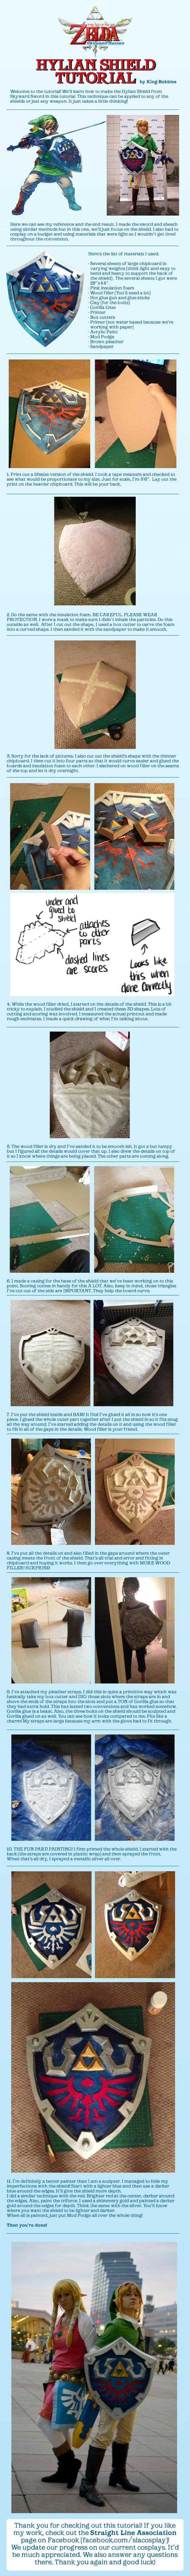 The Legend of Zelda Hylian Shield Cosplay Tutorial by King-Bobbles.deviantart.com on @deviantART